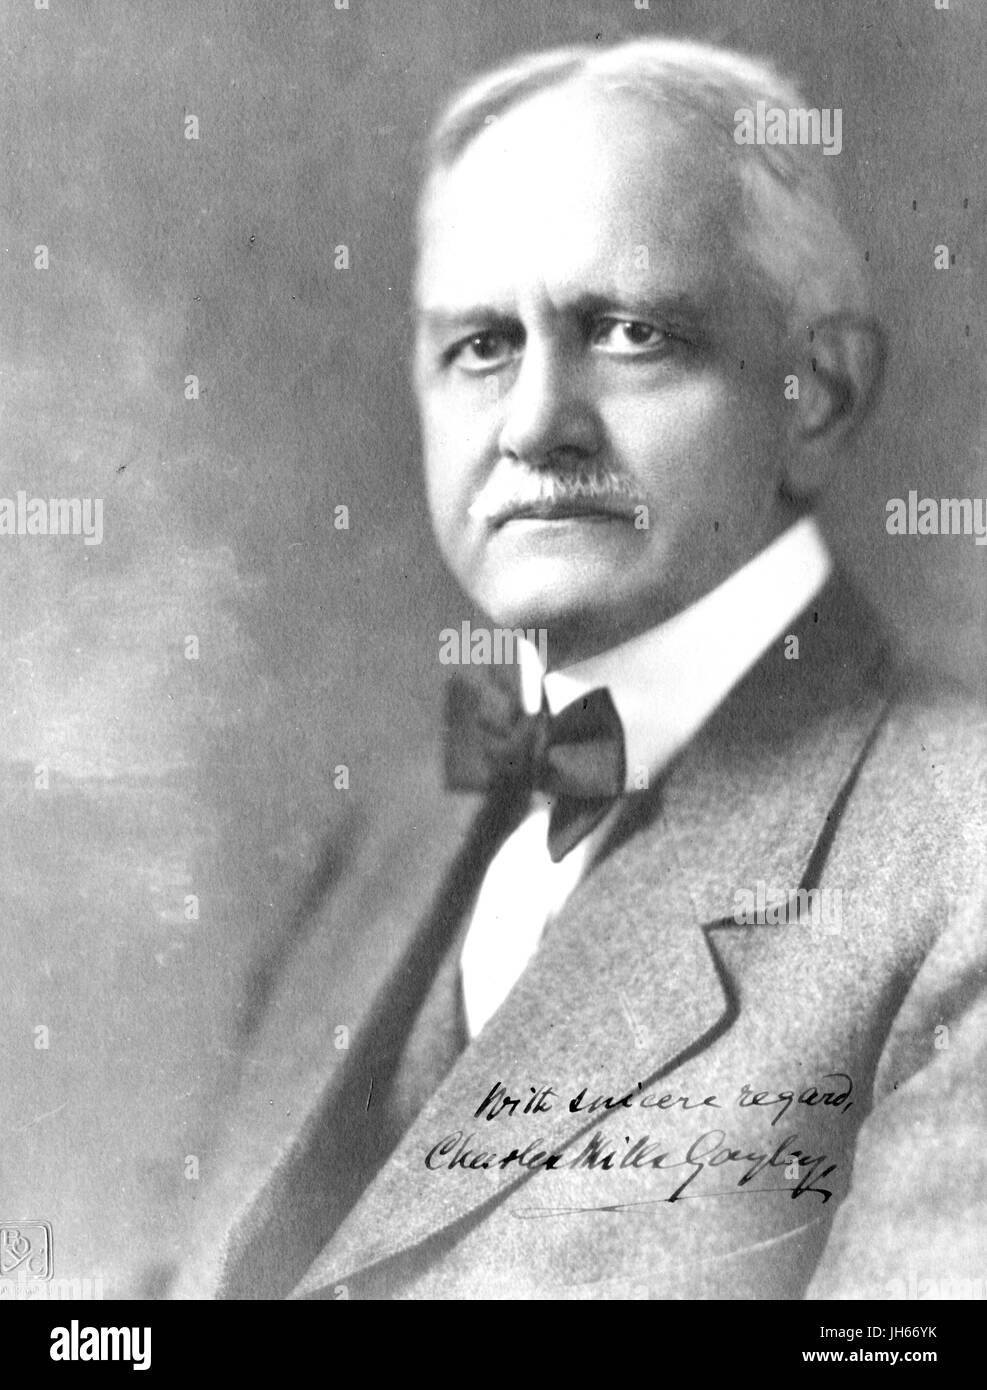 Waist up portrait photograph of Charles Mills Gayley, scholar and professor of English and classics, 1920. - Stock Image